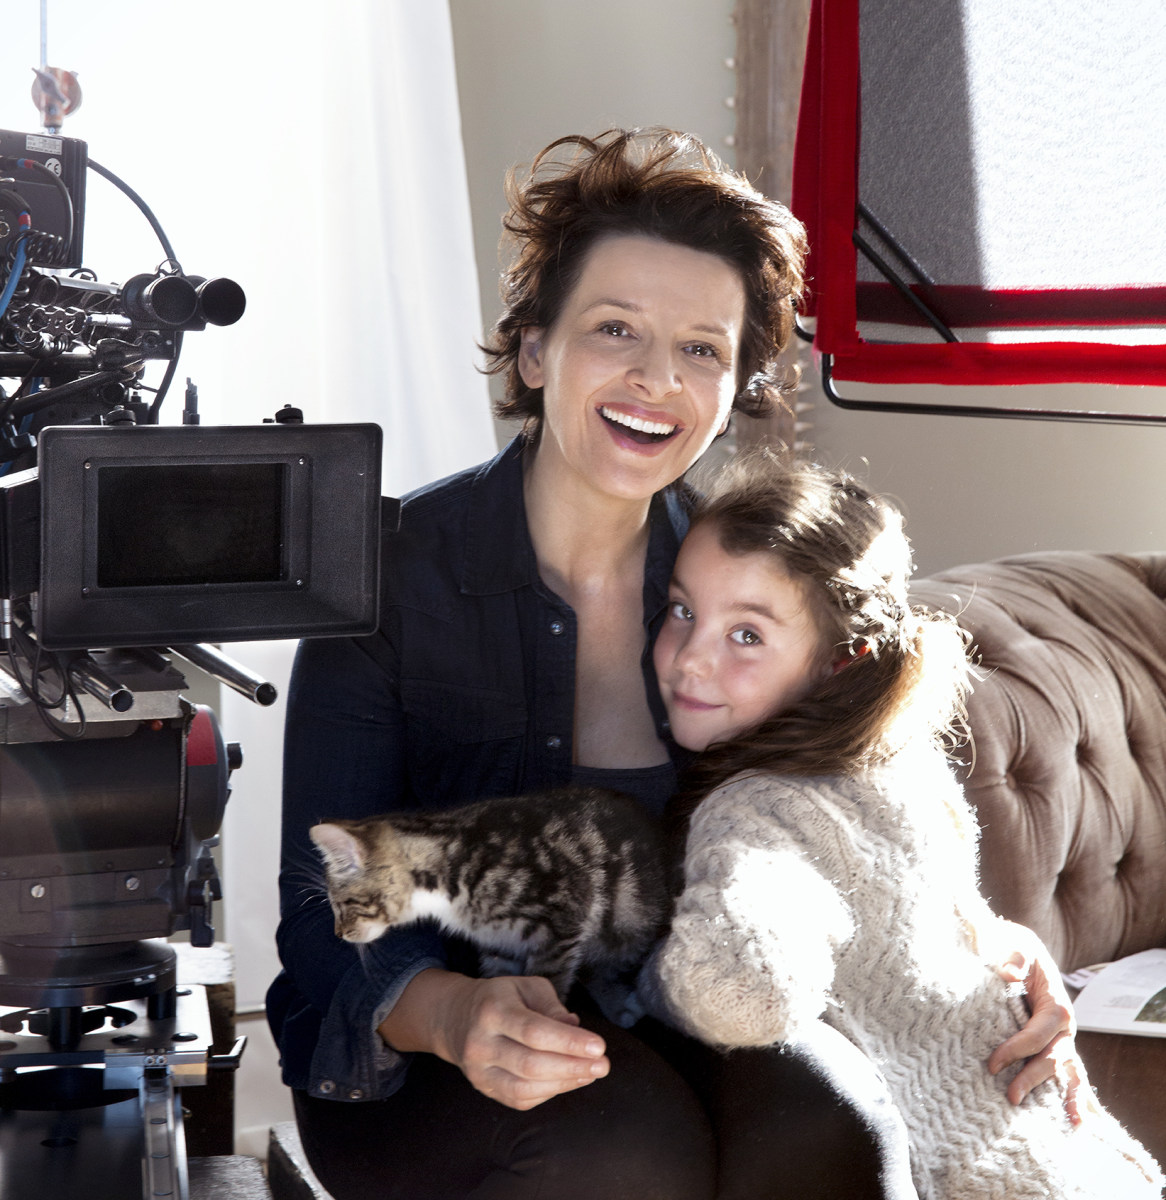 Juliette & Chloe : A Thousand Times Good Night (2013) Behind the Scenes